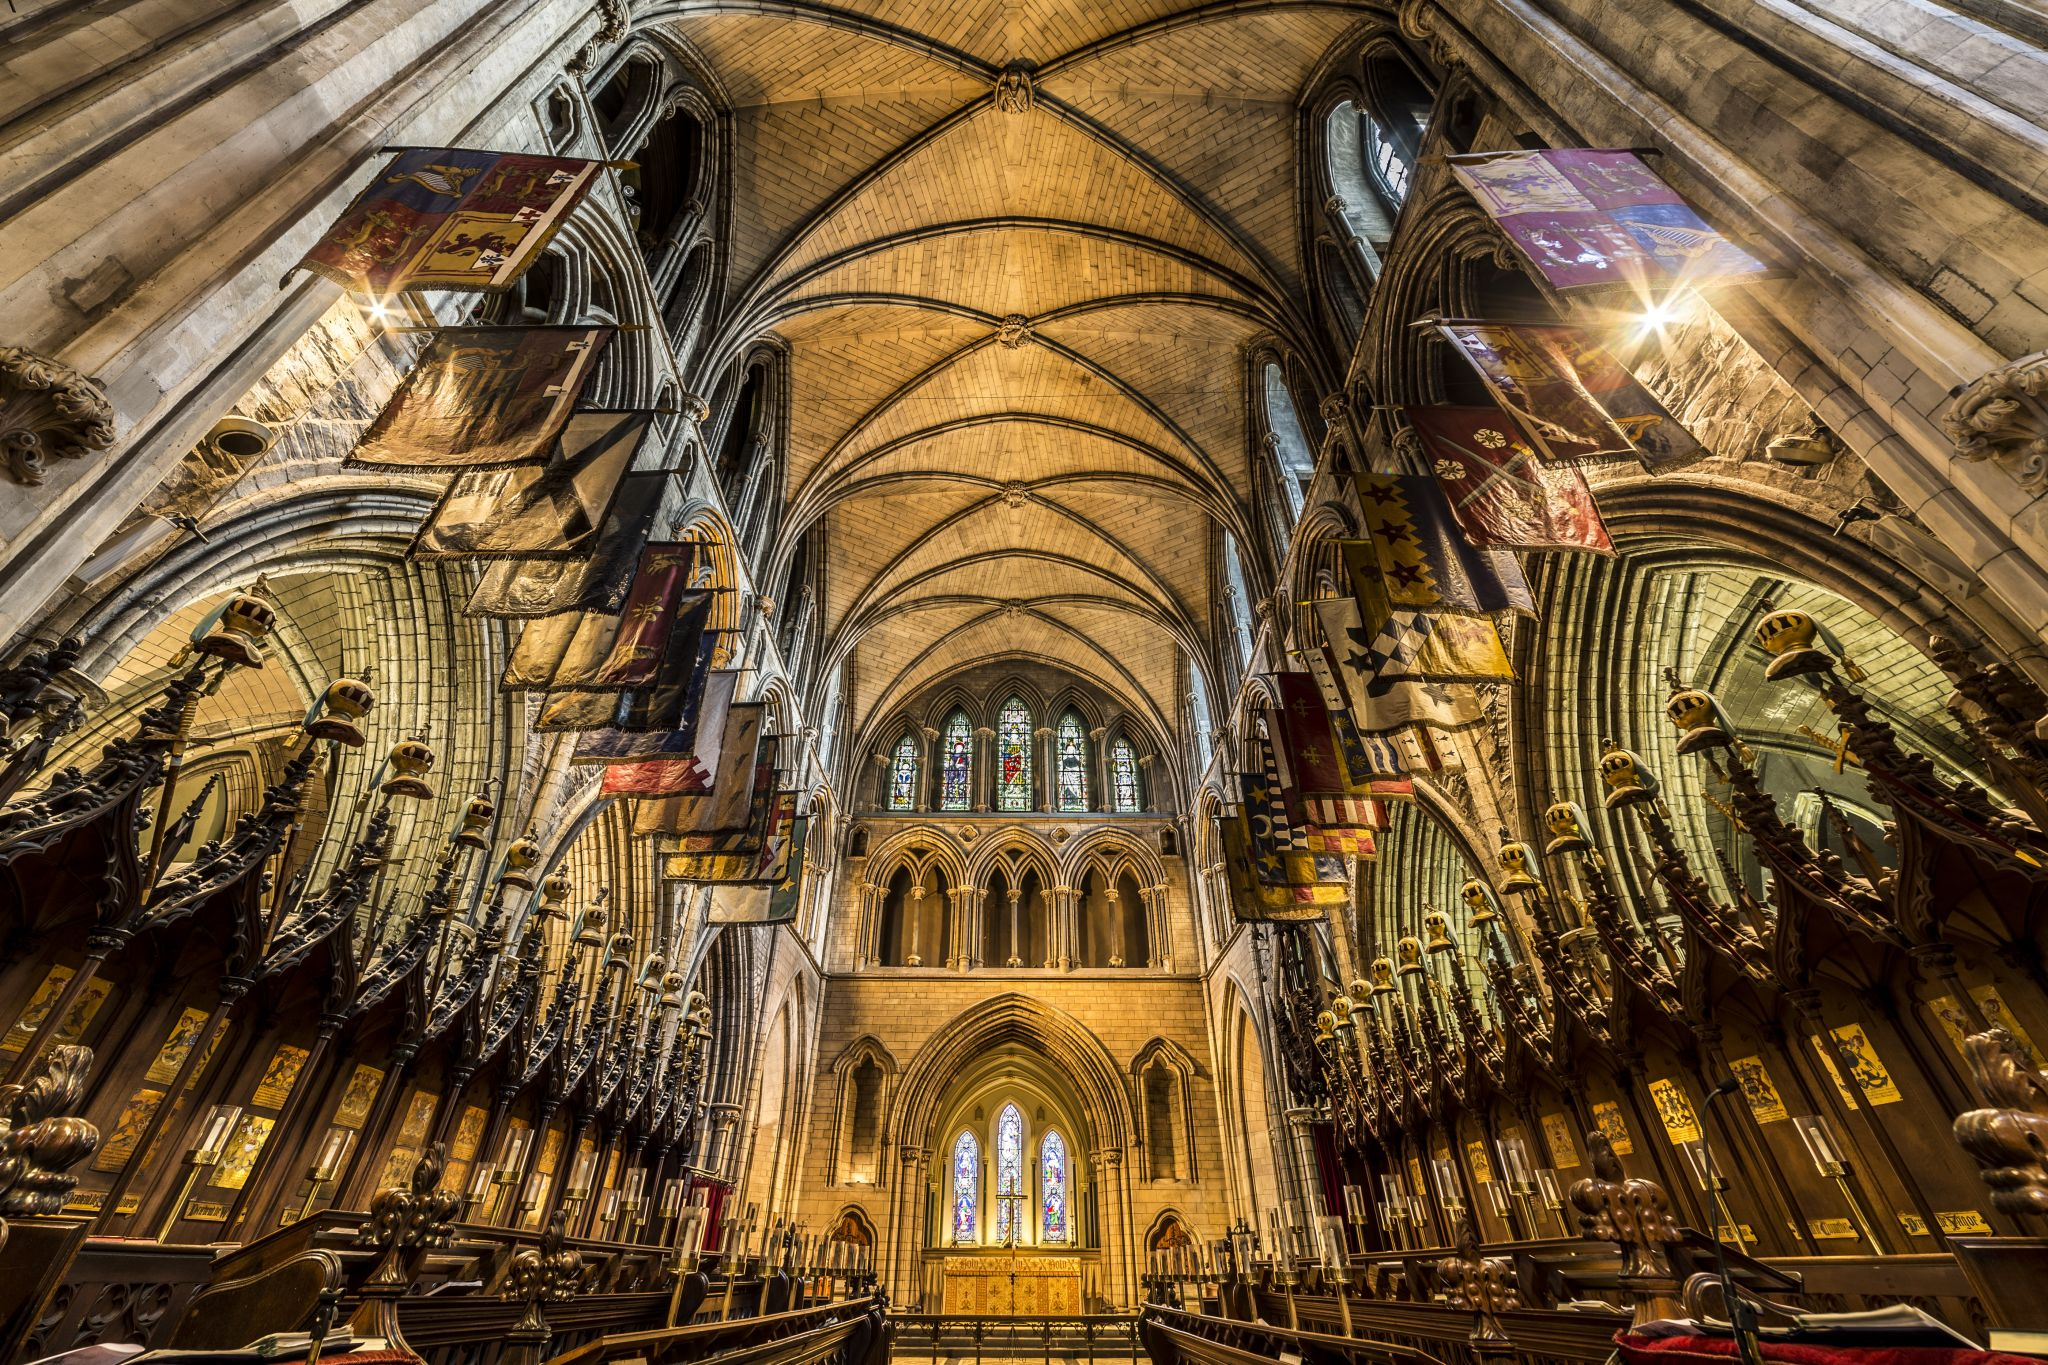 St. Patricks Cathedral, Ireland